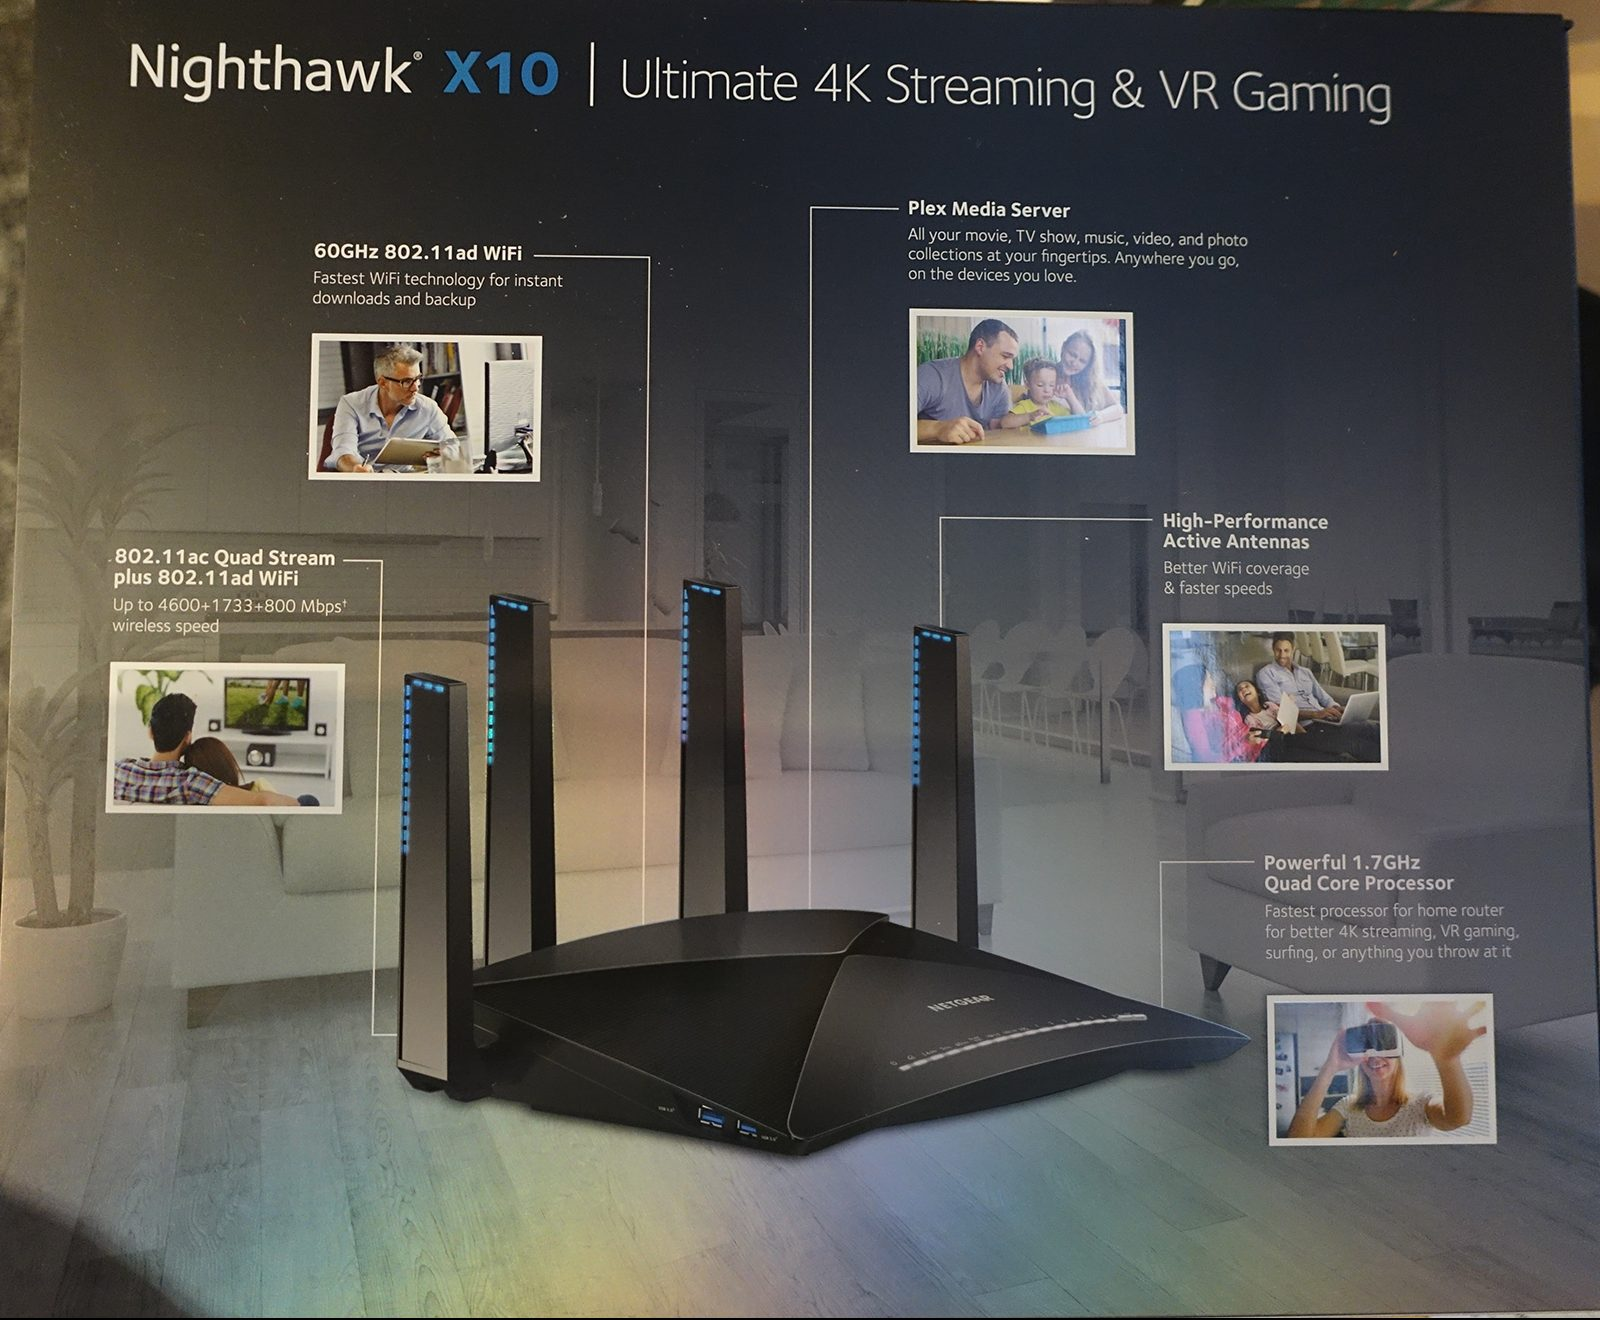 Netgear Nighthawk X10 Review - Ultimate in many ways, over the top